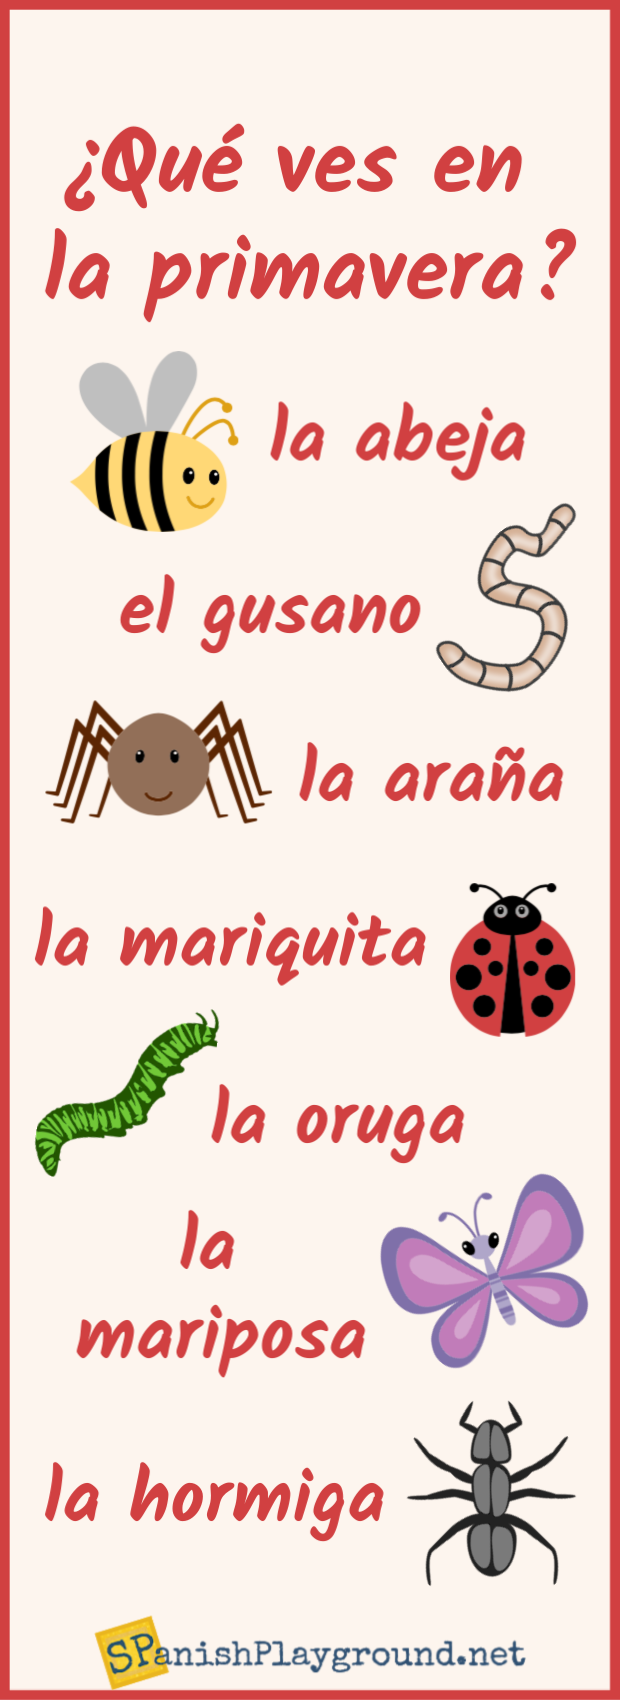 Vocabulary related to insects in Spanish in an infographic for language learners.